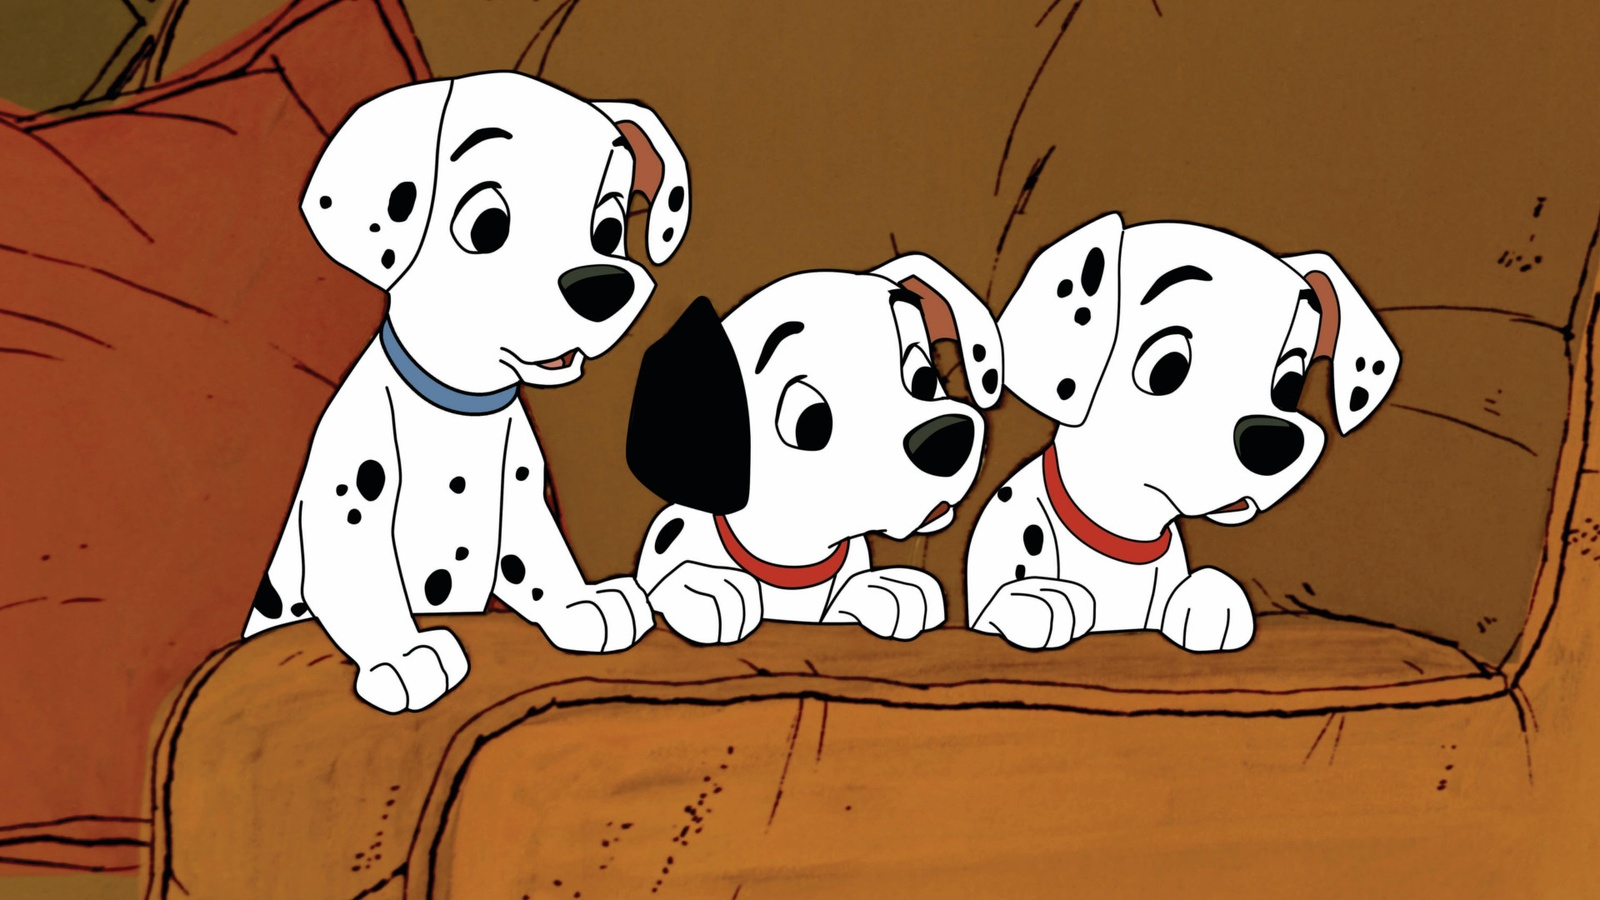 101 далматинец / One Hundred and One Dalmatians background